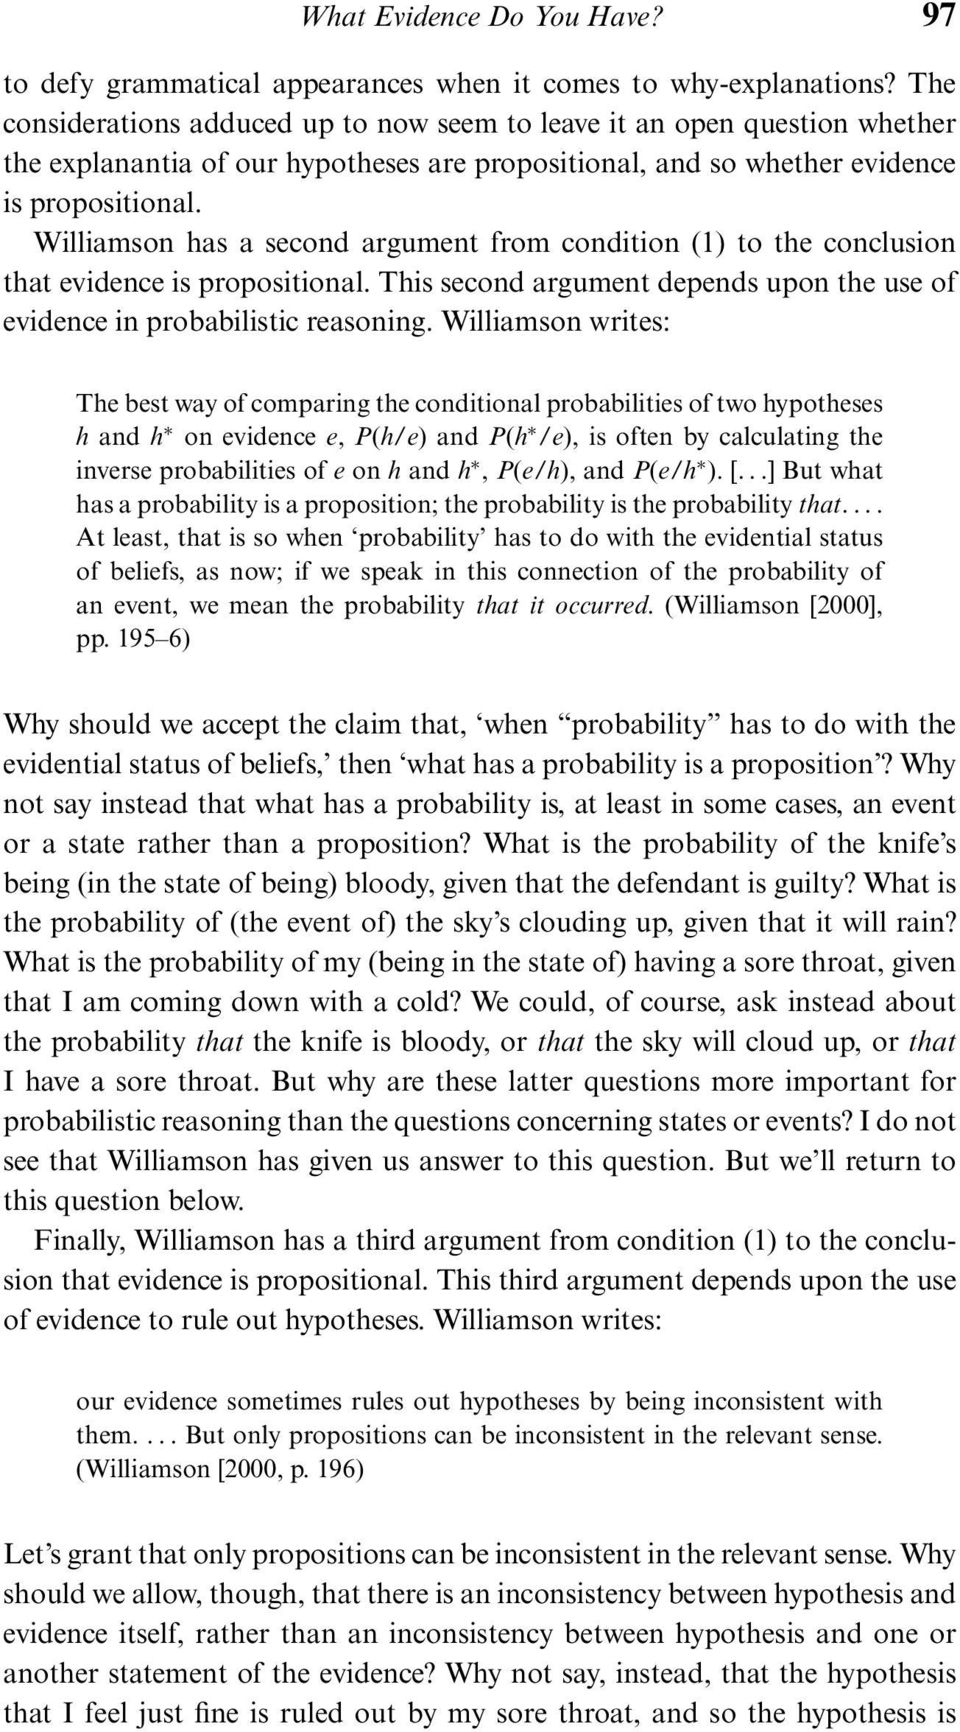 Williamson has a second argument from condition (1) to the conclusion that evidence is propositional. This second argument depends upon the use of evidence in probabilistic reasoning.